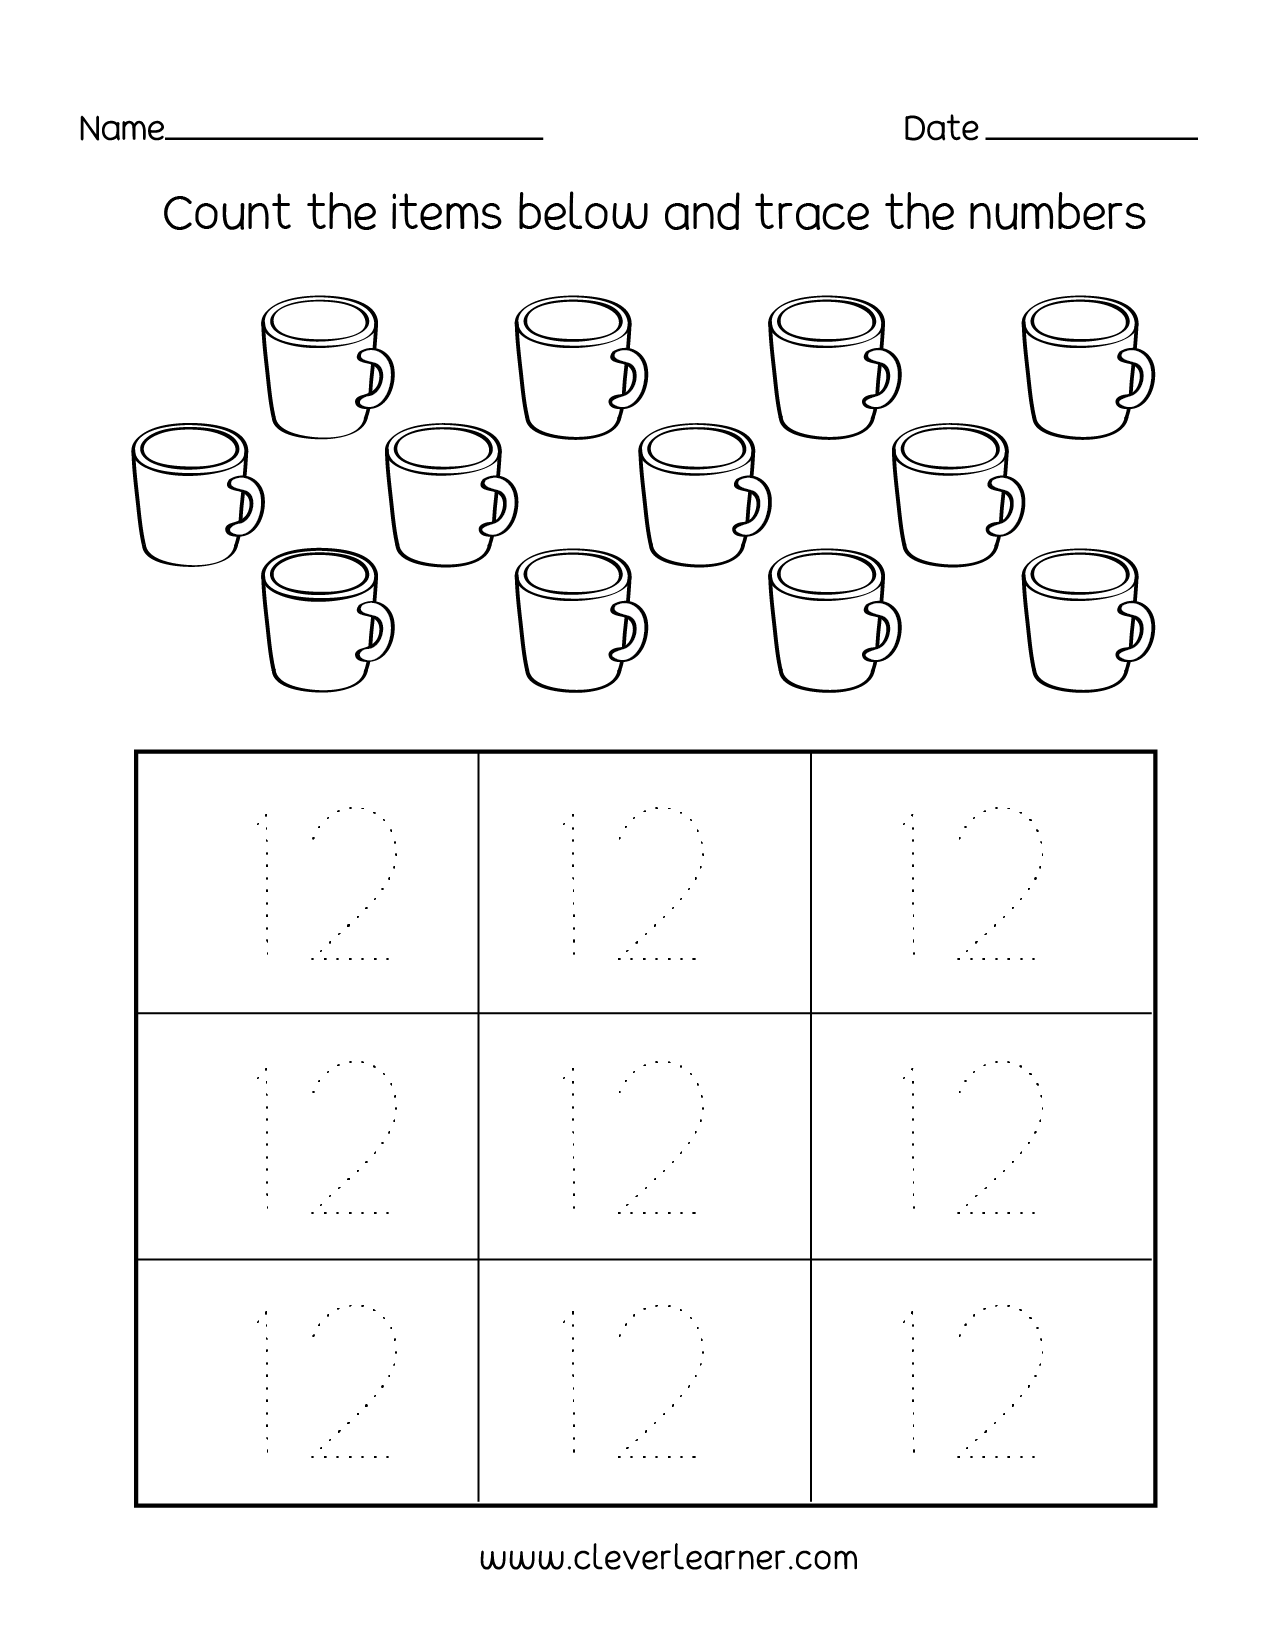 photo relating to Th Worksheets Free Printable identified as Quantity 12 producing, counting and id printable